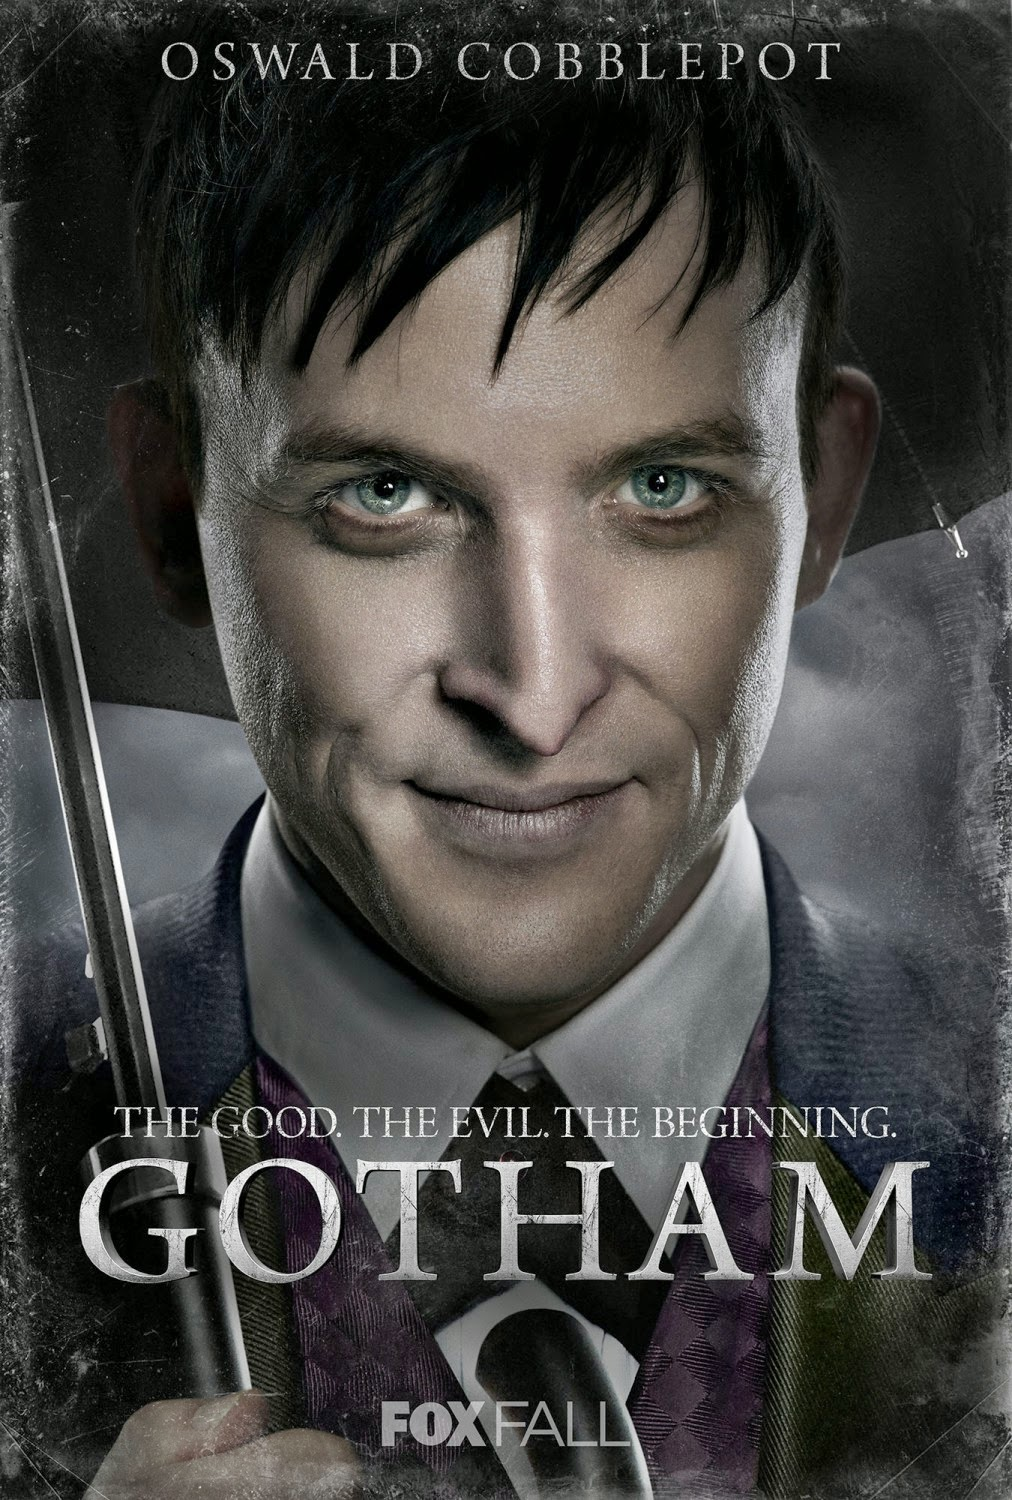 "Gotham ""The Good. The Evil. The Beginning."" Character TV Poster Set - Robin Lord Taylor as Oswald Cobblepot-The Penguin"